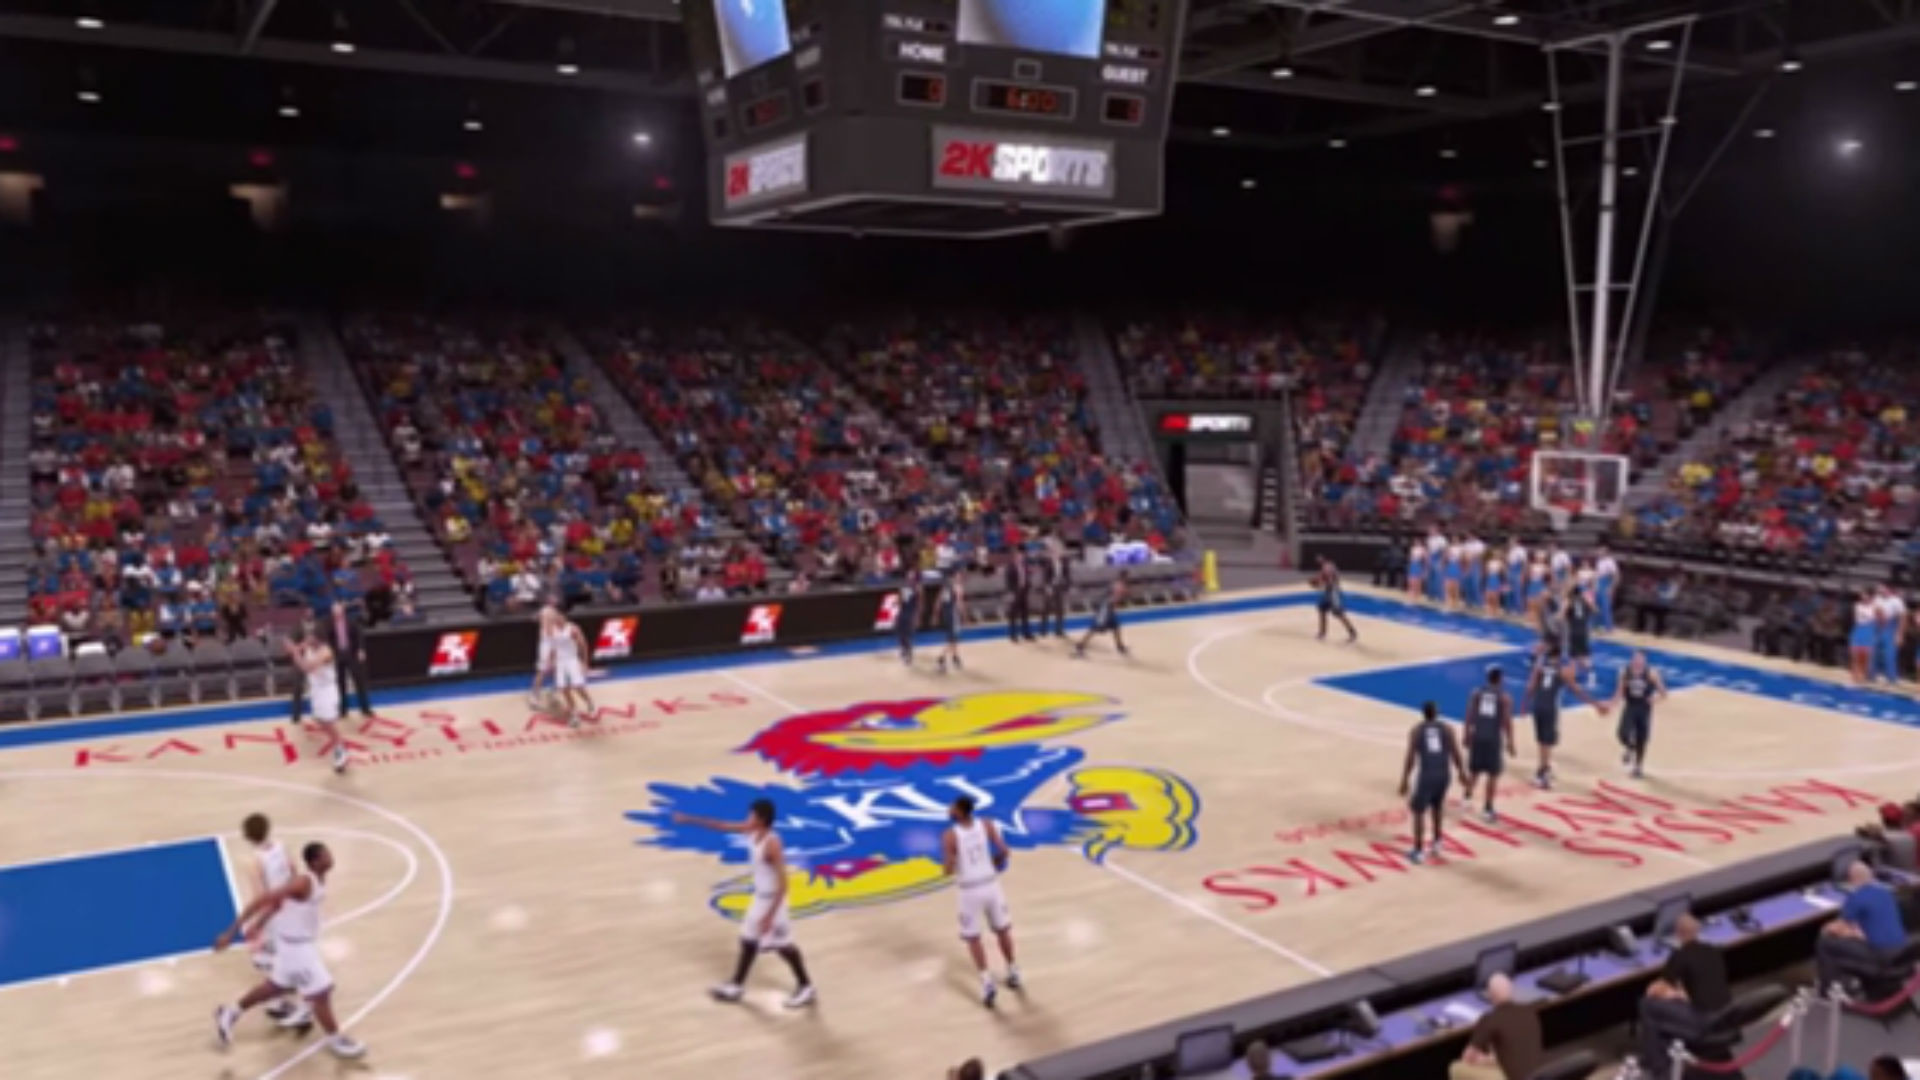 1920x1080 Kansas Jayhawks make an appearance in NBA 2K16 trailer | Other Sports |  Sporting News